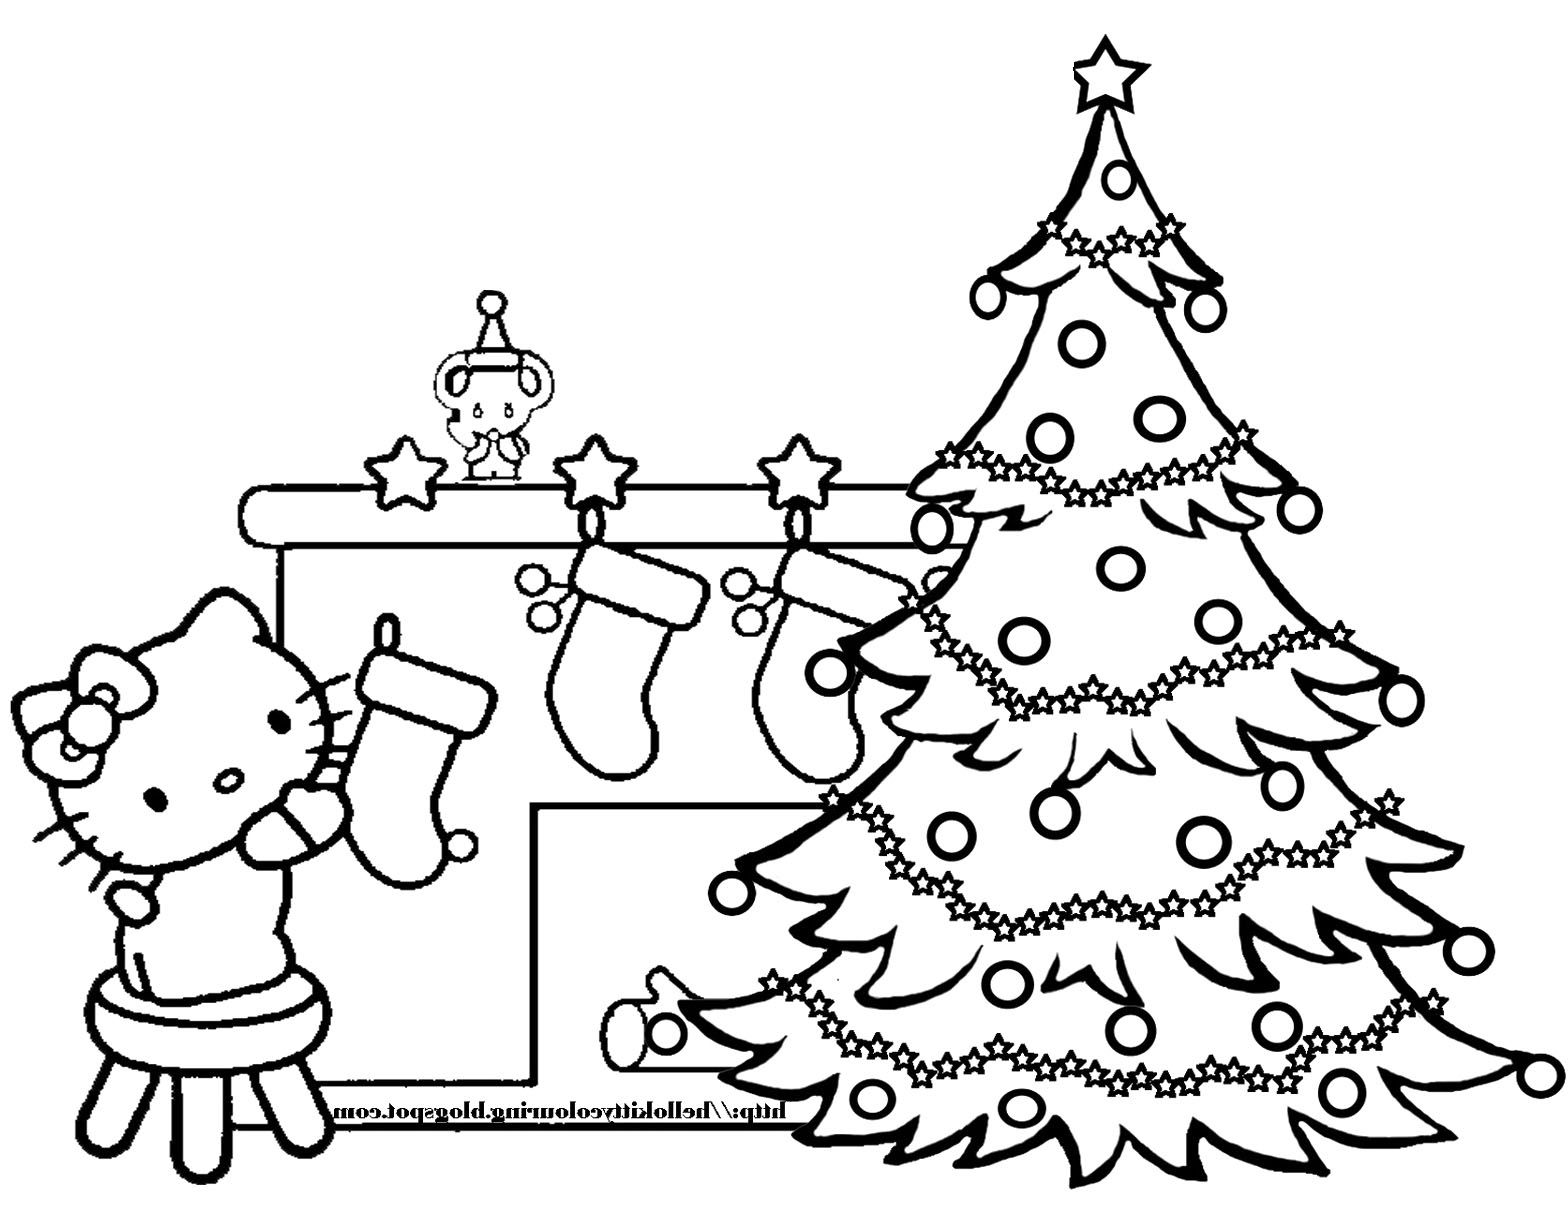 Kids coloring pages christmas trees printable - Hello Kitty And Christmas Tree Coloring Pages